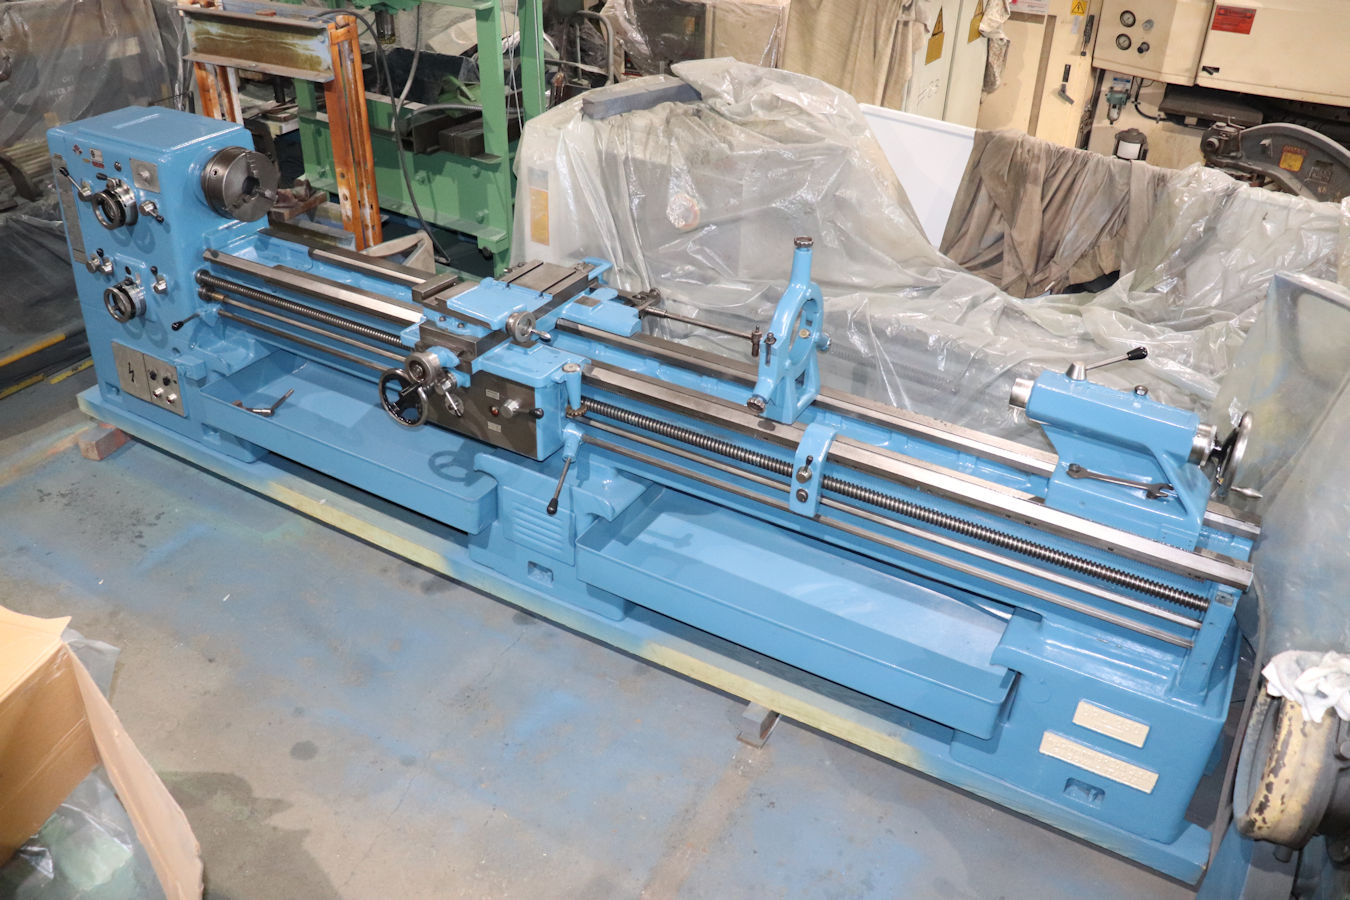 Trucut Armature Lathe And Undercutter